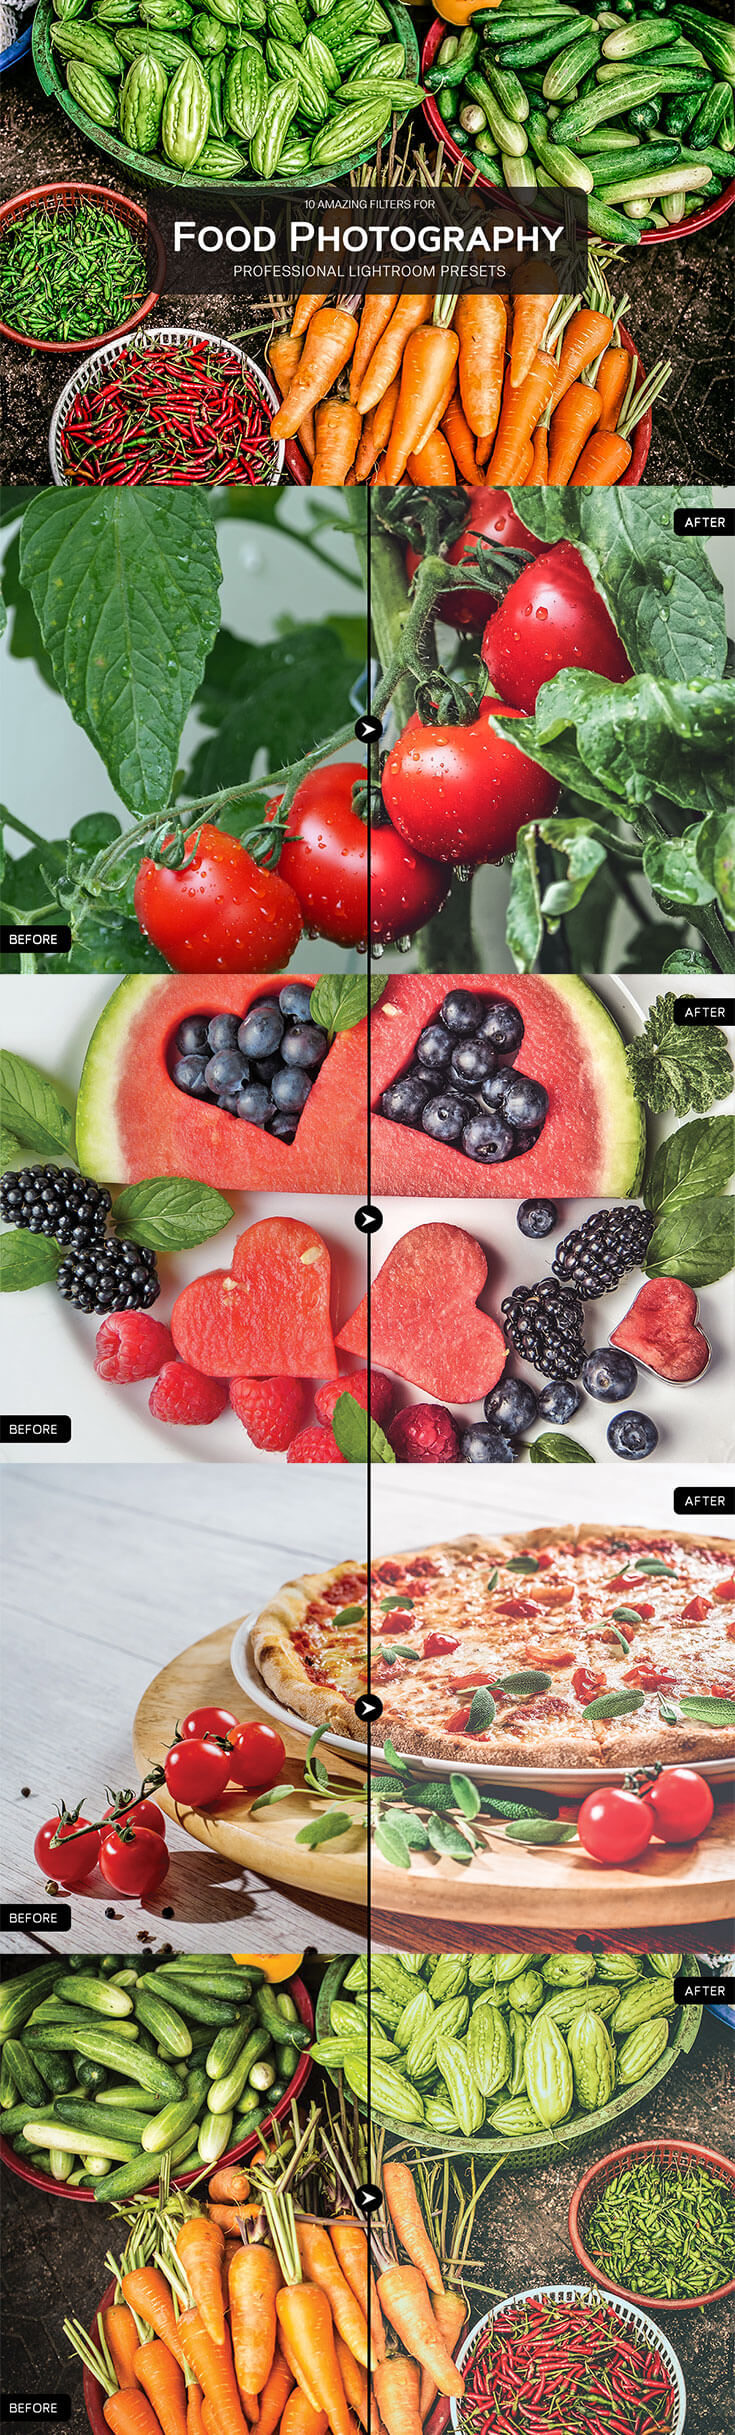 10 Free #Food #Photography #Lightroom Presets Pack helps food photographers to make their shots yummy and powerful and was specially designed to give your food photography superpowers. This Food Collection is a must have for food photographers, wedding photographers & food bloggers. A professional photographer can save precious time by using this effect.